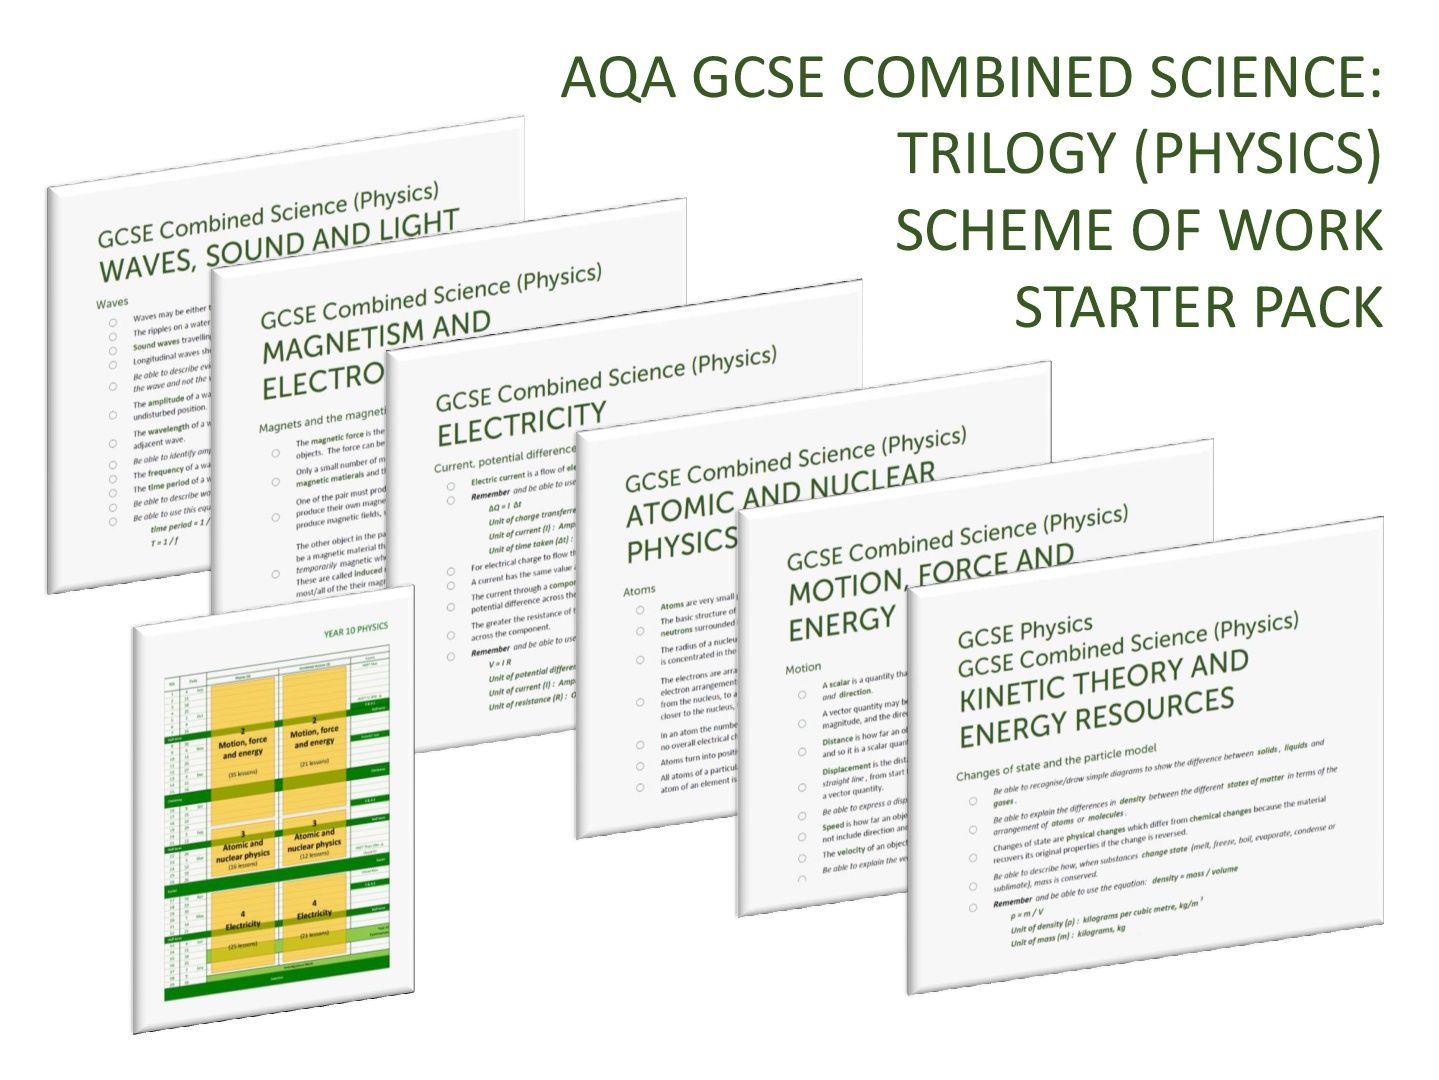 PHYSICS SCHEME OF WORK STARTER PACK for AQA GCSE Combined Science: Trilogy (Physics)